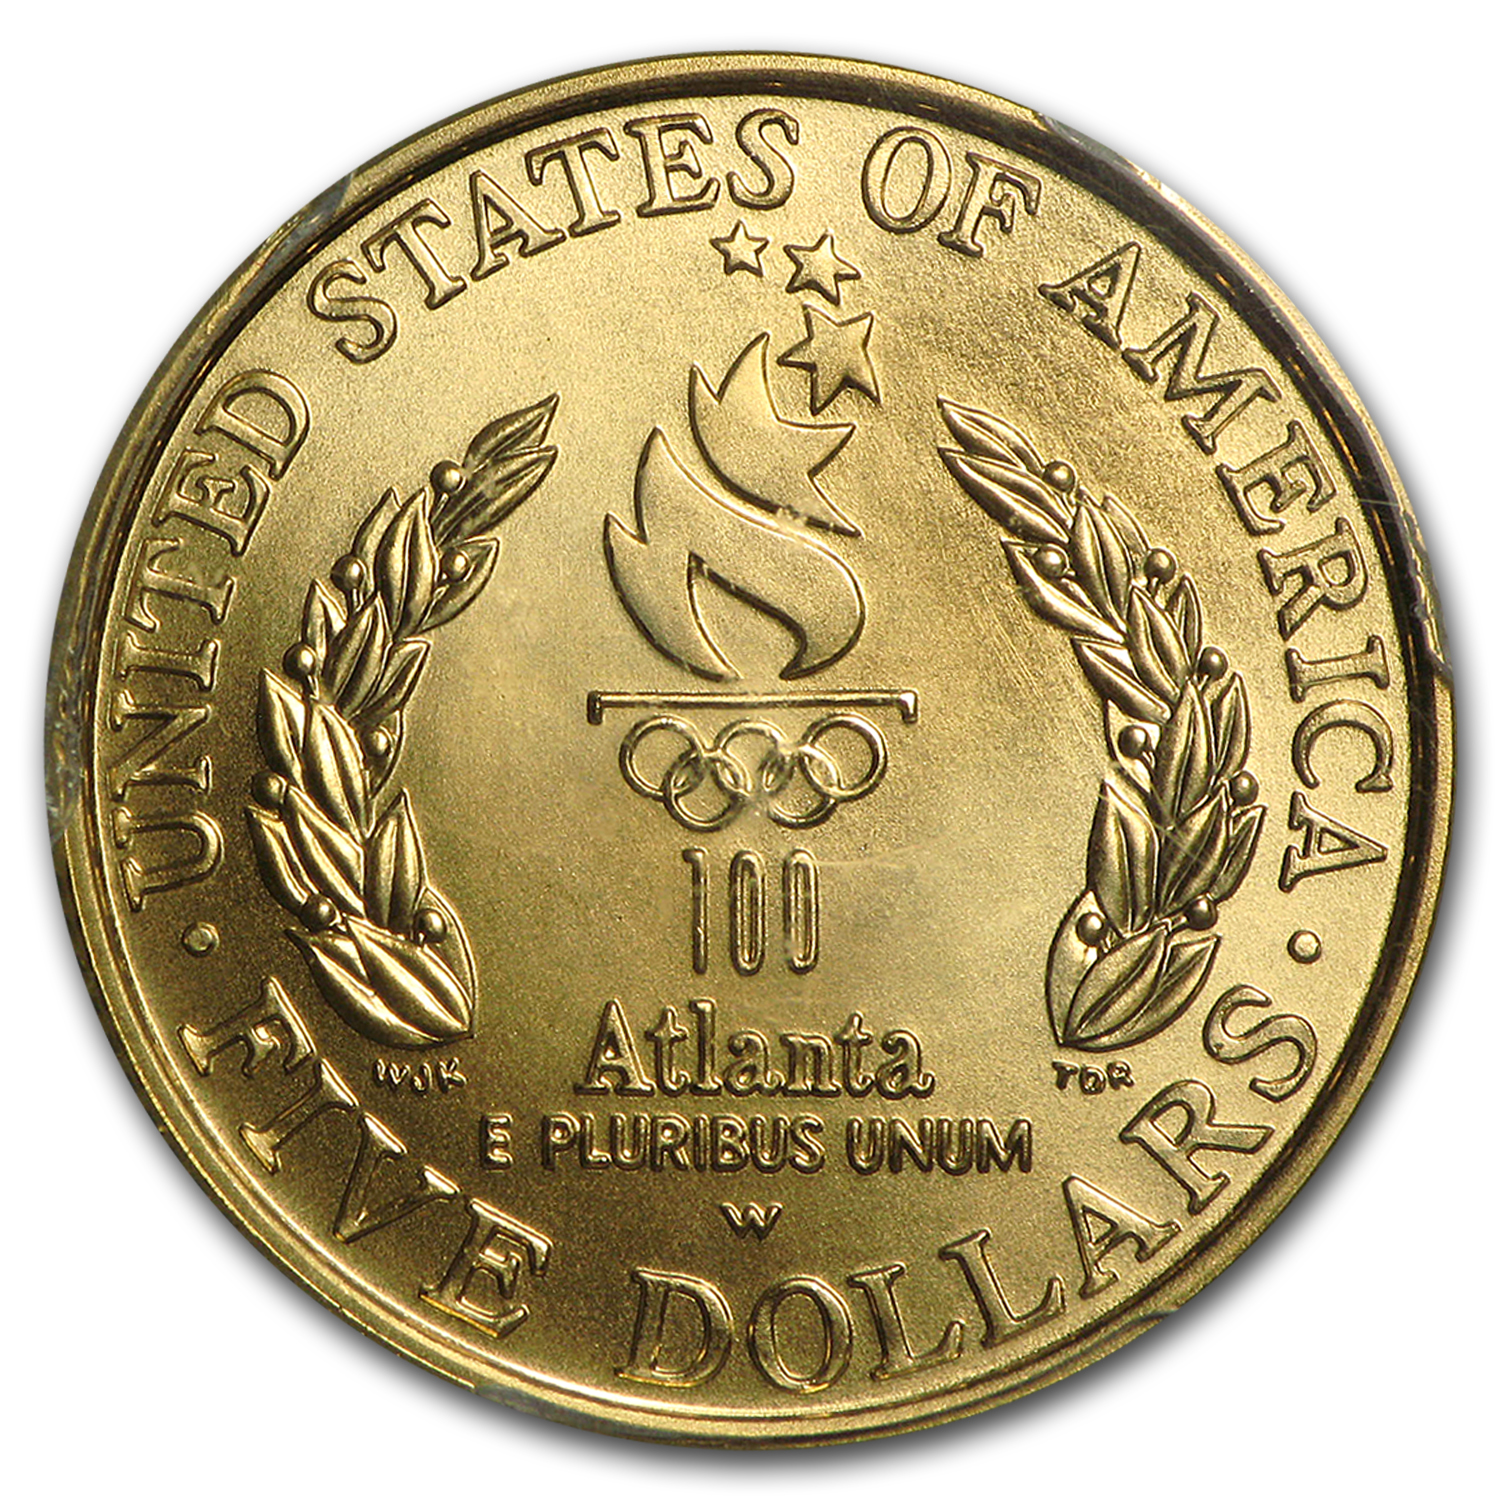 1996-W Gold $5 Commem Olympic Flag Bearer MS-69 PCGS